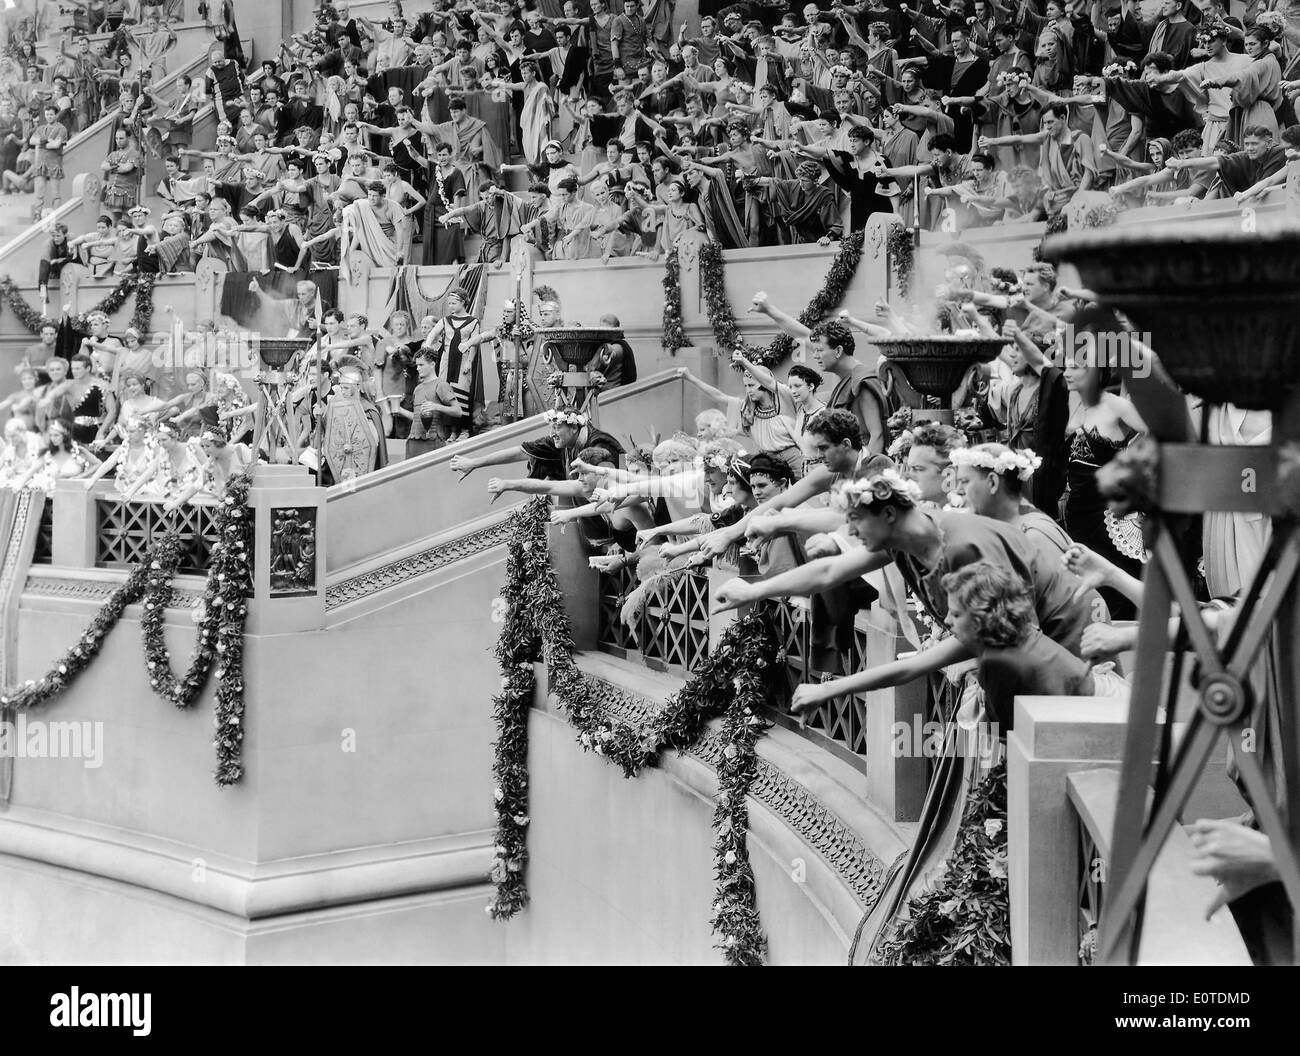 Spectators in Arena, on-set of the Film, 'The Sign of the Cross', 1932 - Stock Image